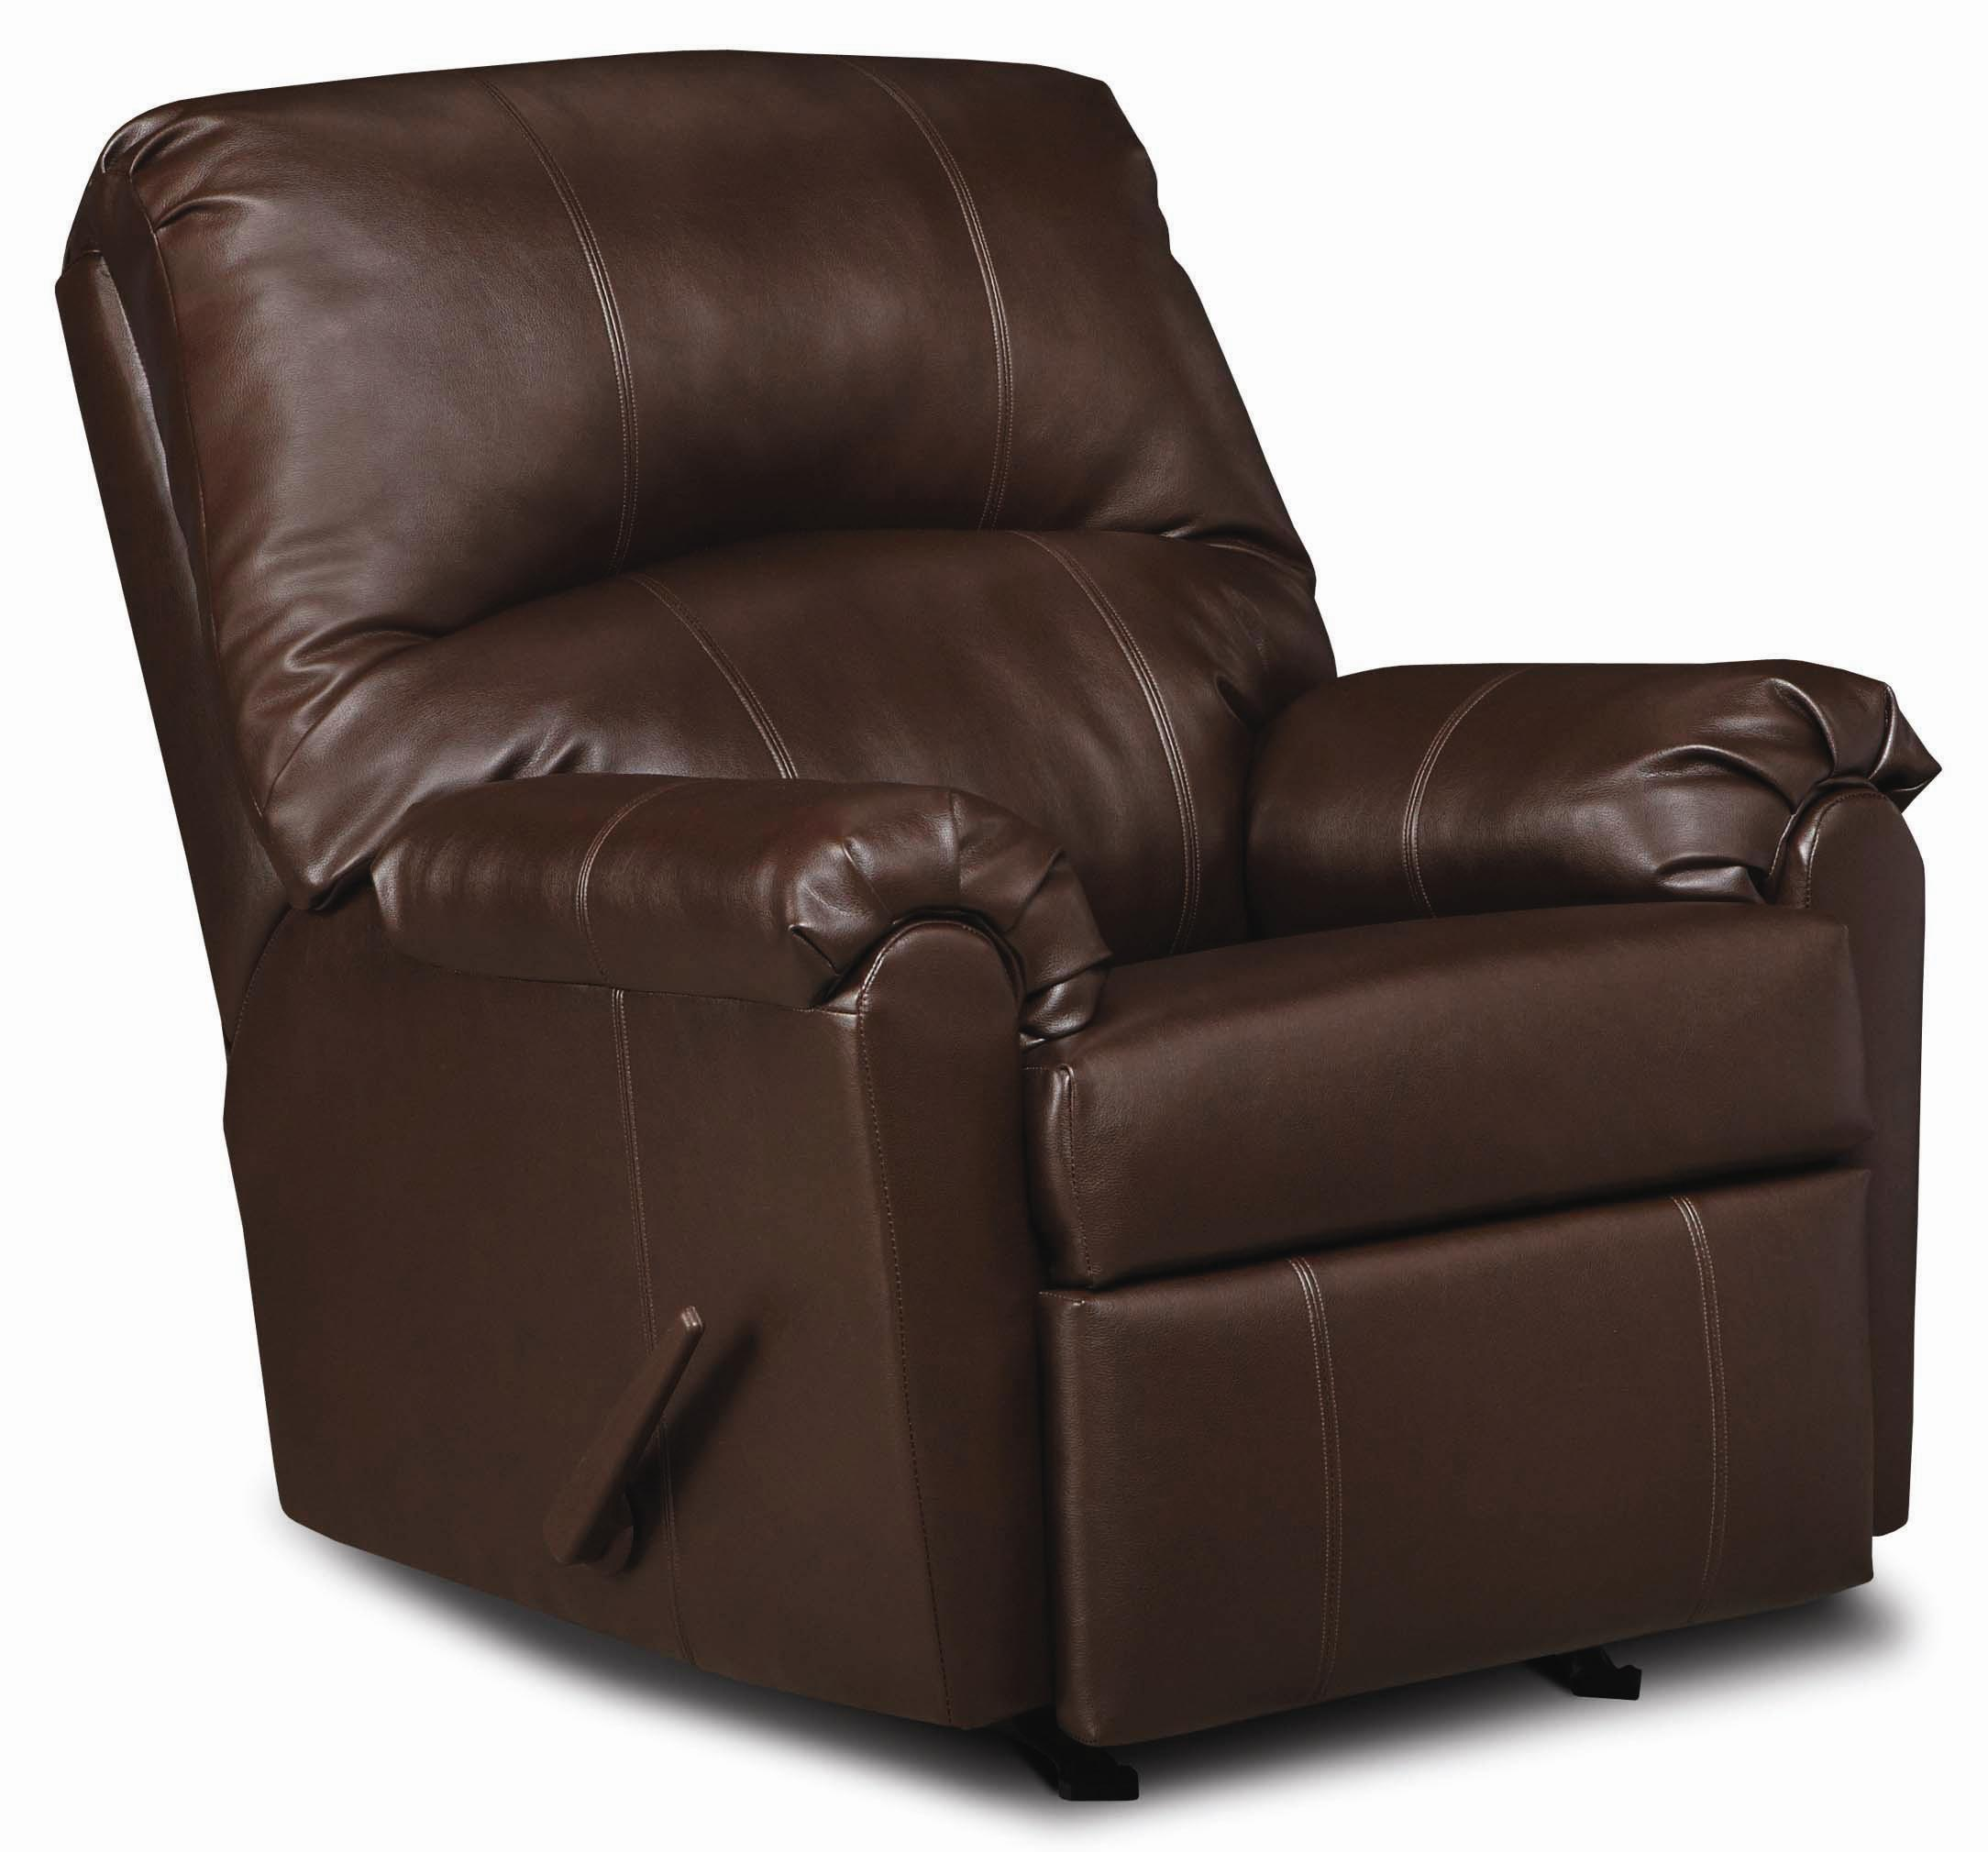 Simmons Upholstery 278 Casual 3-Way Recliner - Item Number: 278 Walnut